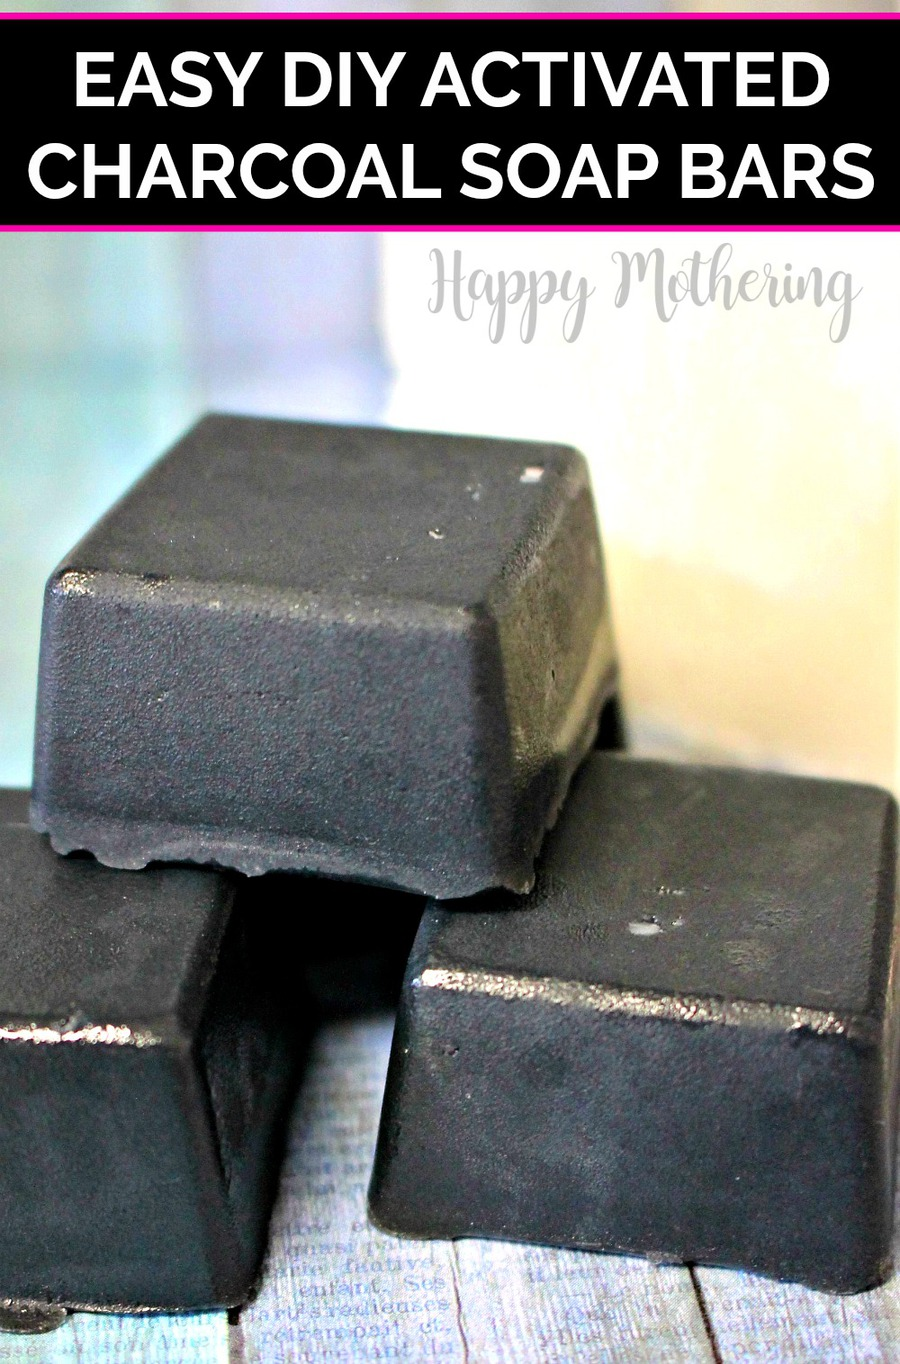 Are you looking for an easy DIY activated charcoal soap bars recipe? Our natural detox soap is made with shea butter melt and pour soap and essential oils.